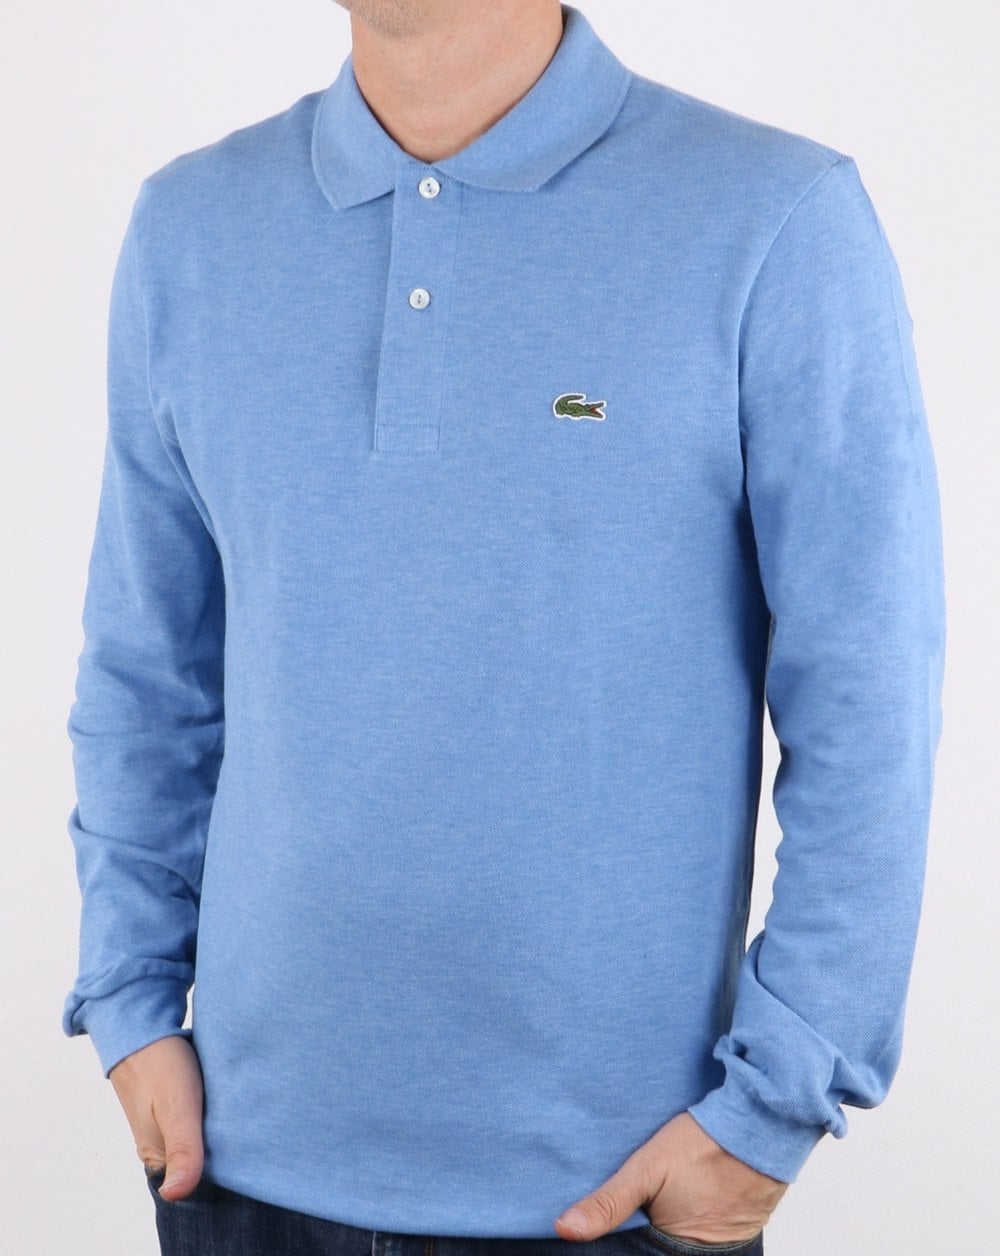 f3f6b03597 Lacoste Long Sleeve Polo Shirt Light Blue